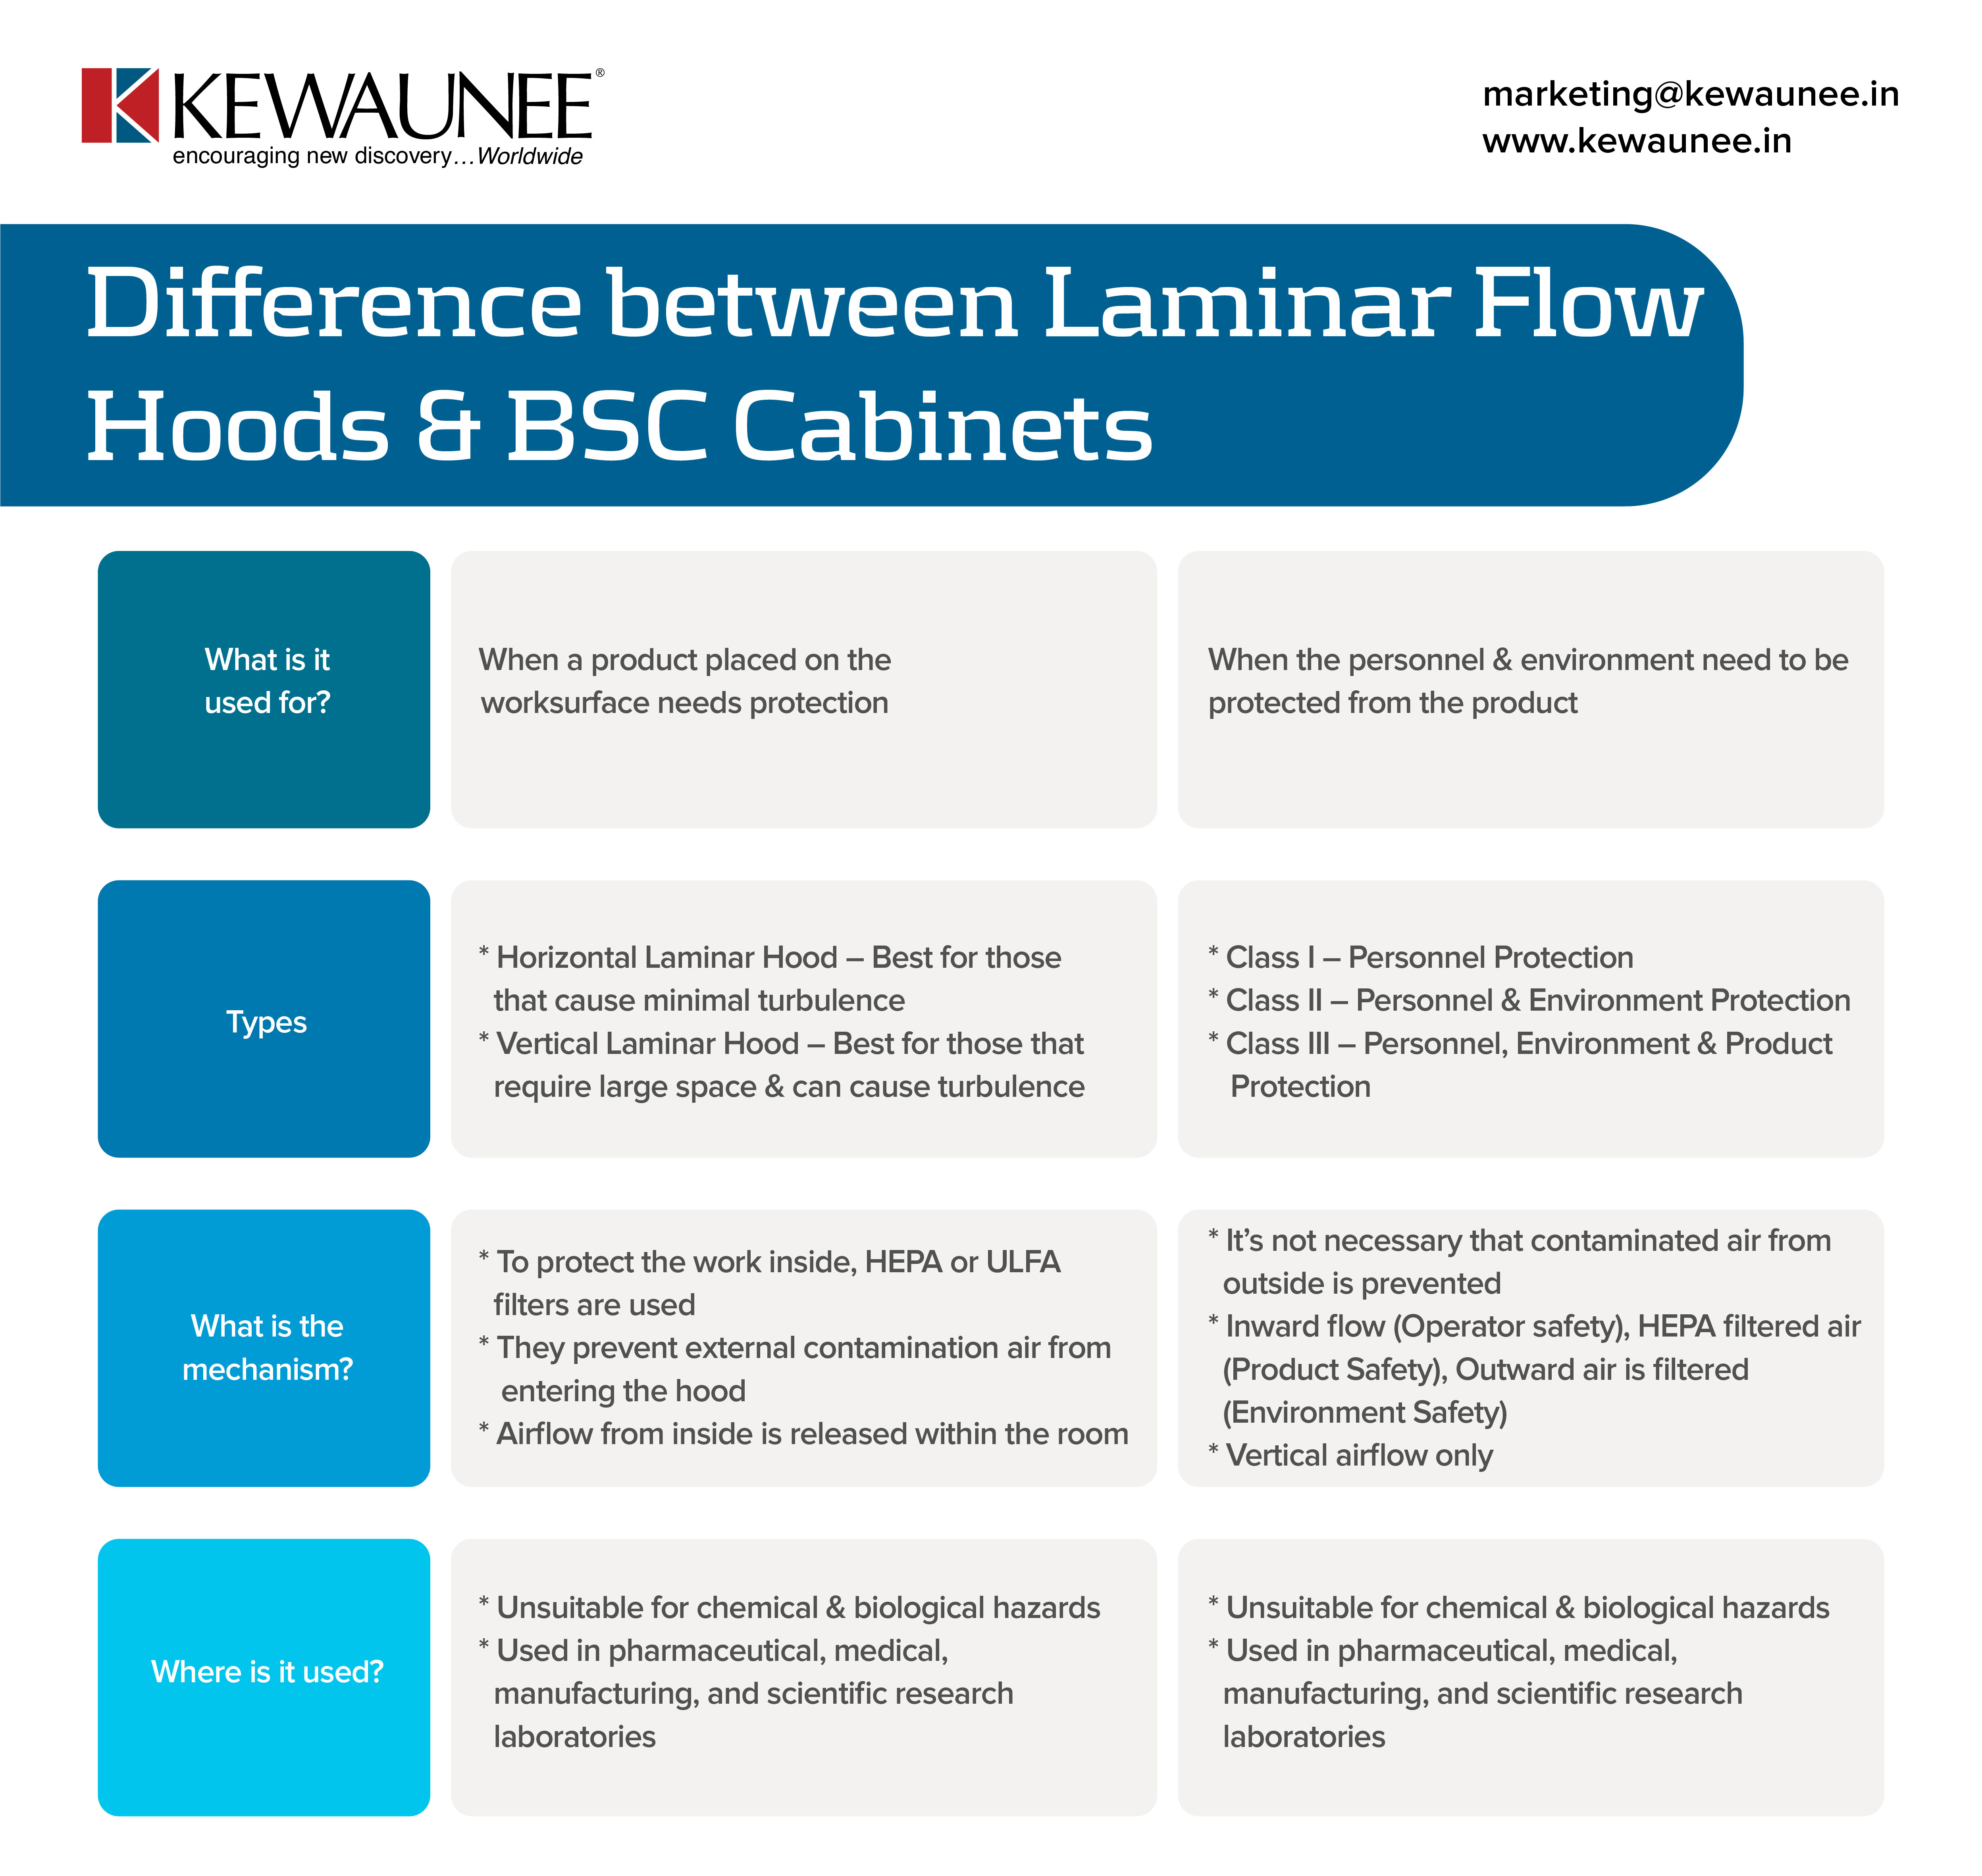 Difference between Laminar Flow Hoods & BSC Cabinets